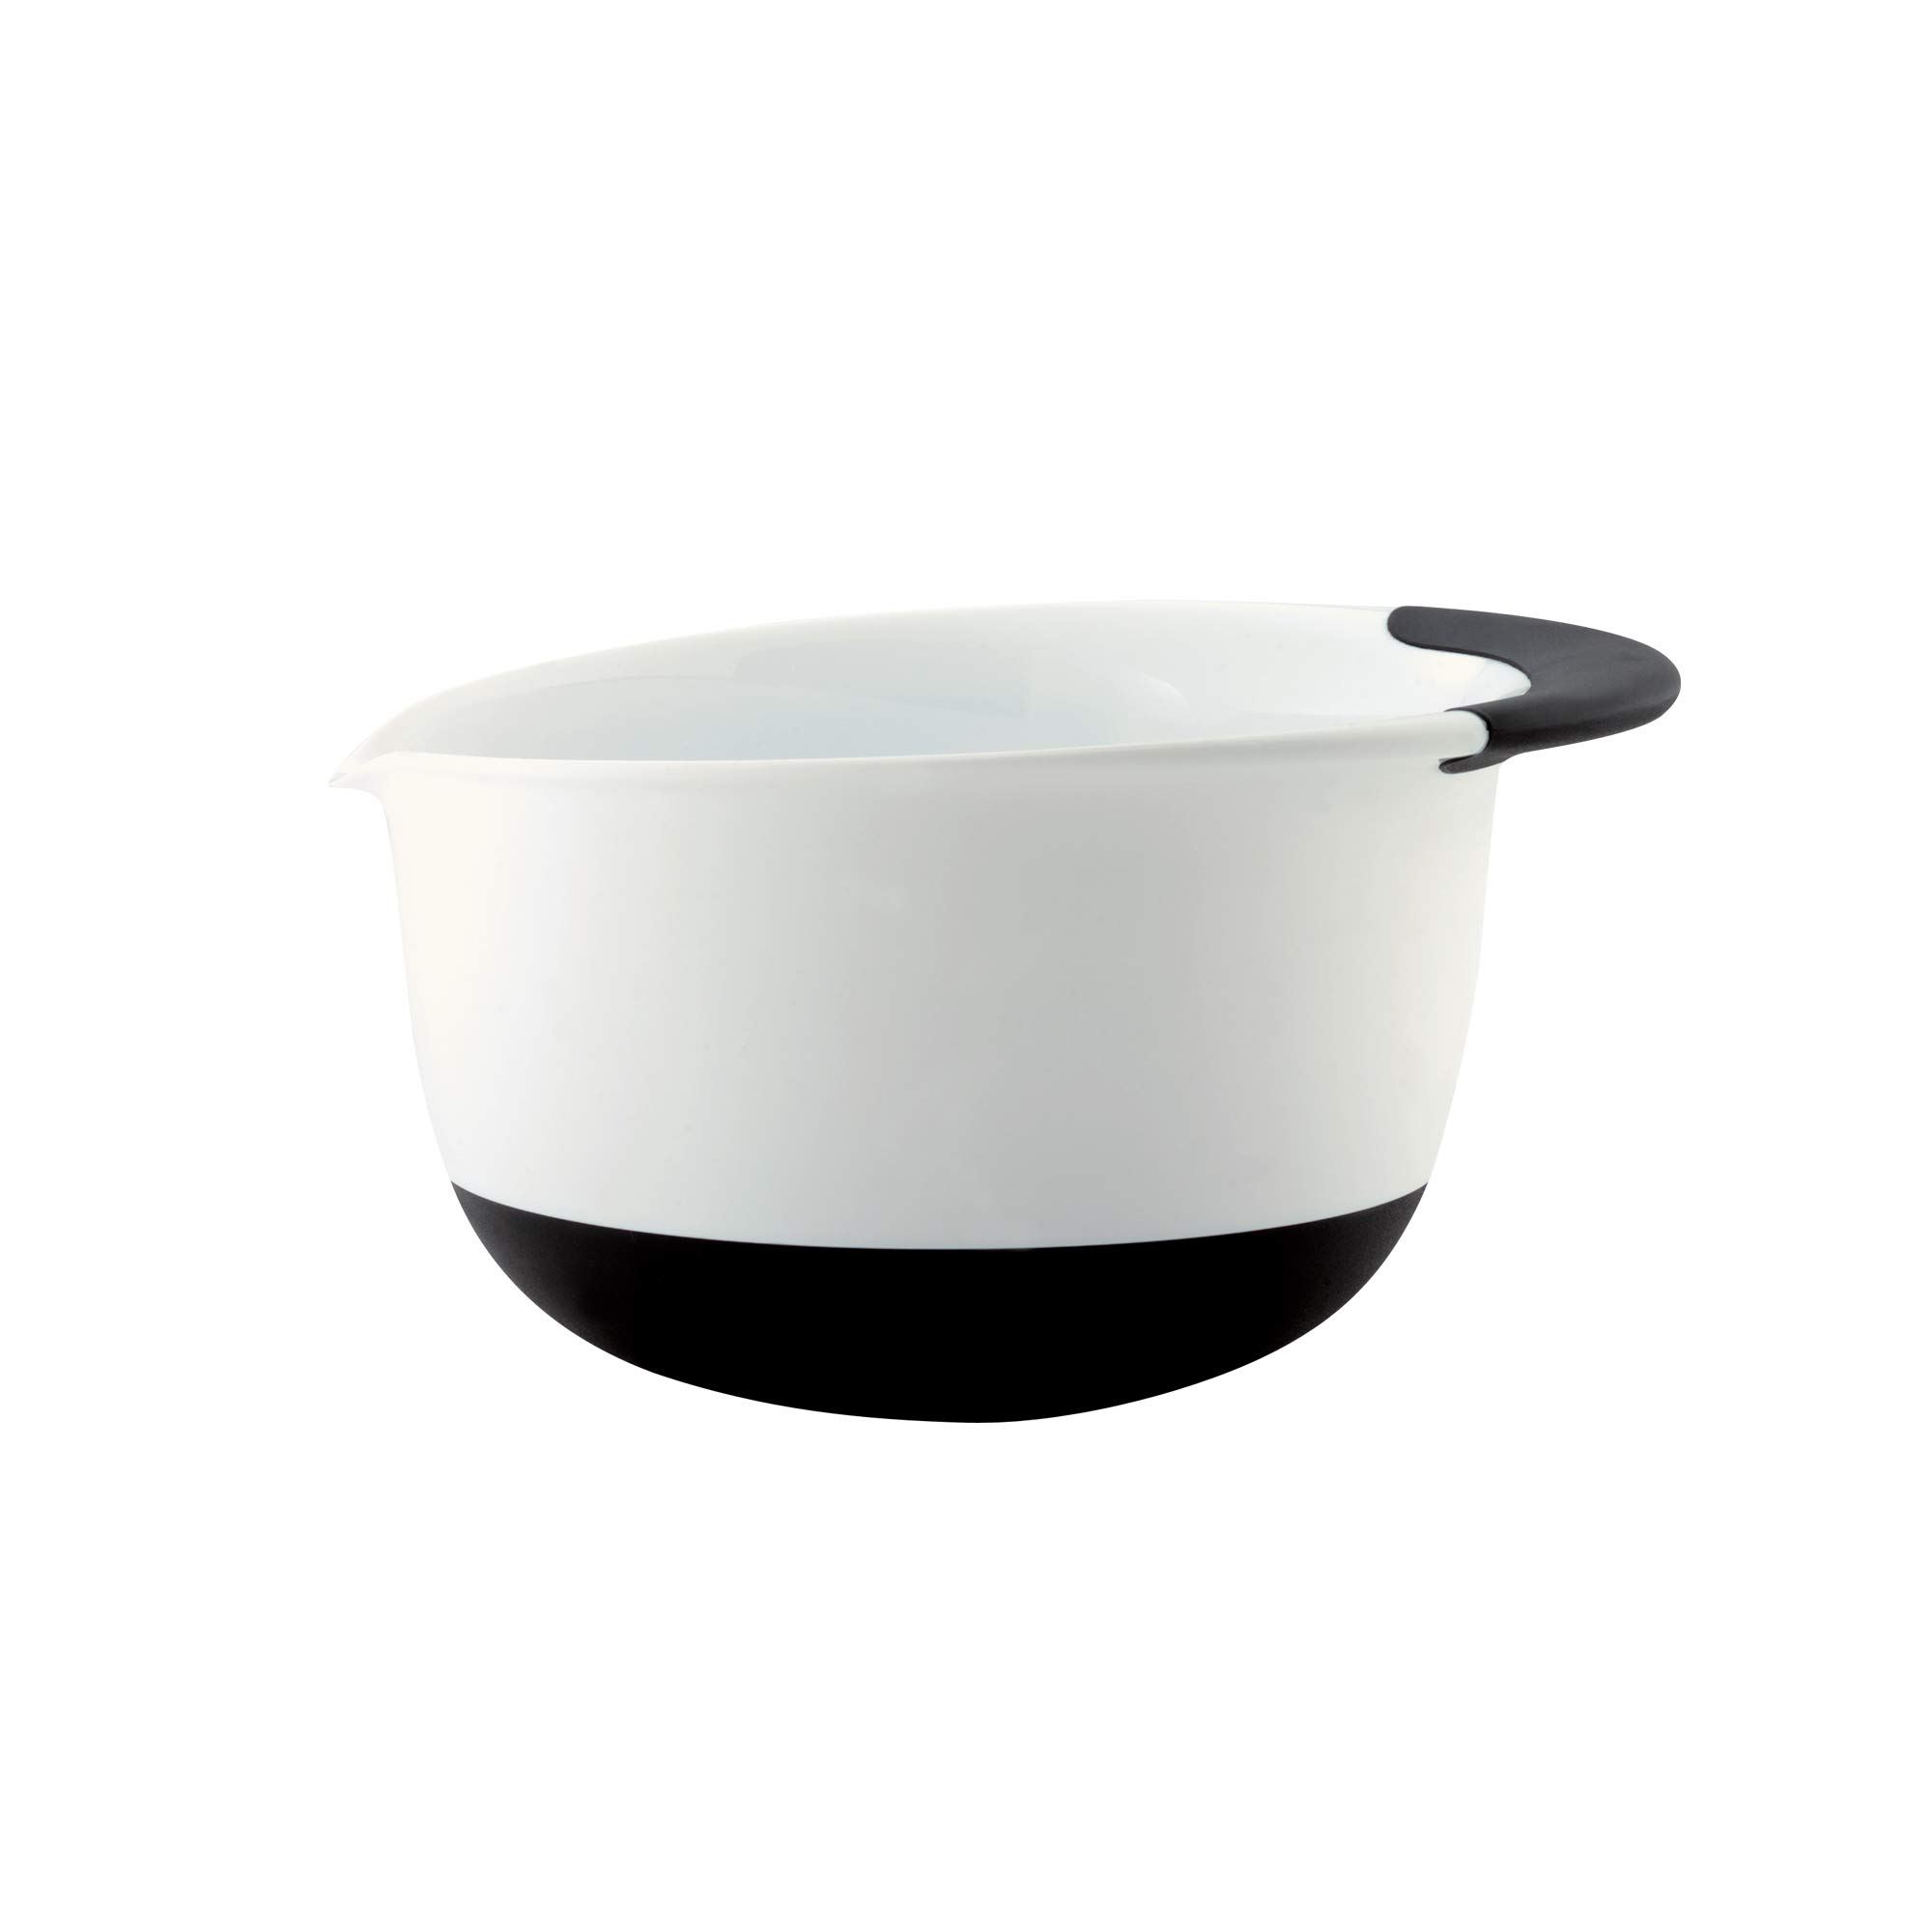 OXO Good Grips 5-Quart Mixing Bowl by OXO